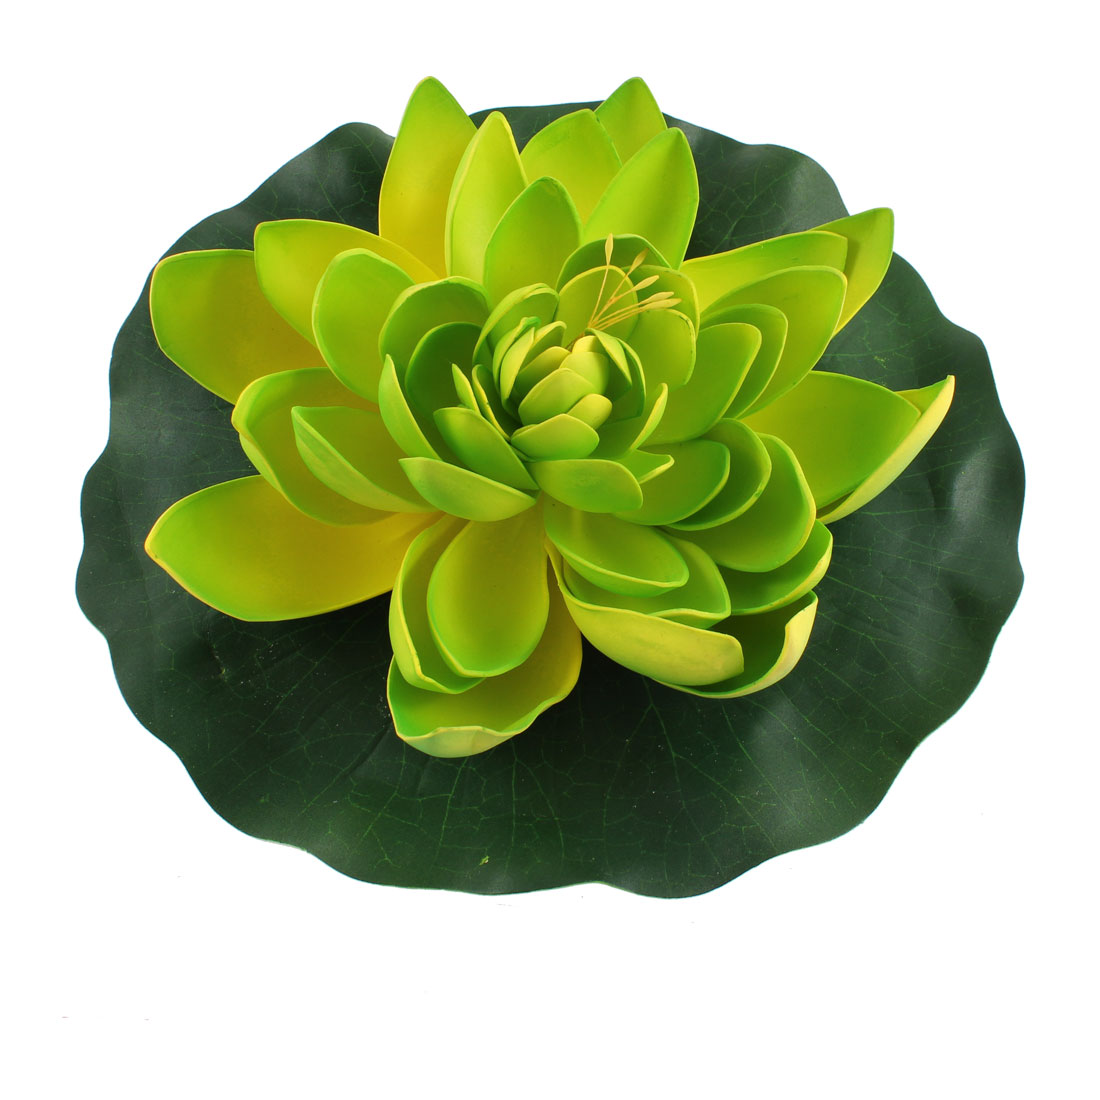 Aquarium Artificial Foam Lotus Flower Aquatic Floating Plant Decor Green